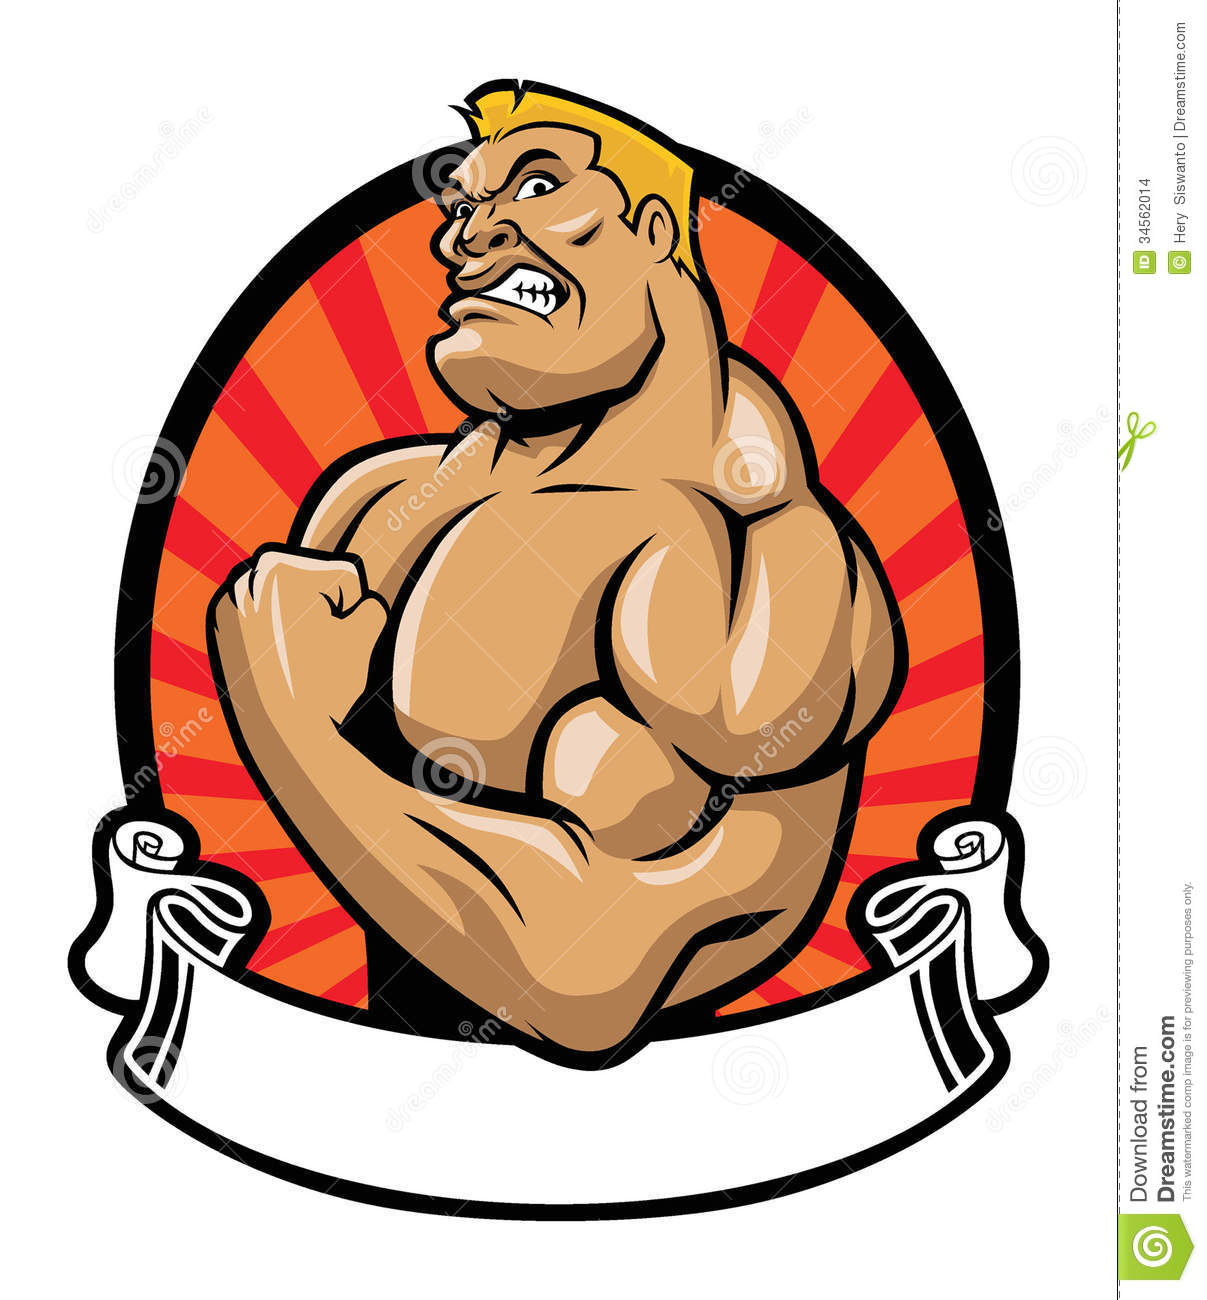 Muscle bodybuilder stock vector illustration of sporty - Cartoon body builder ...